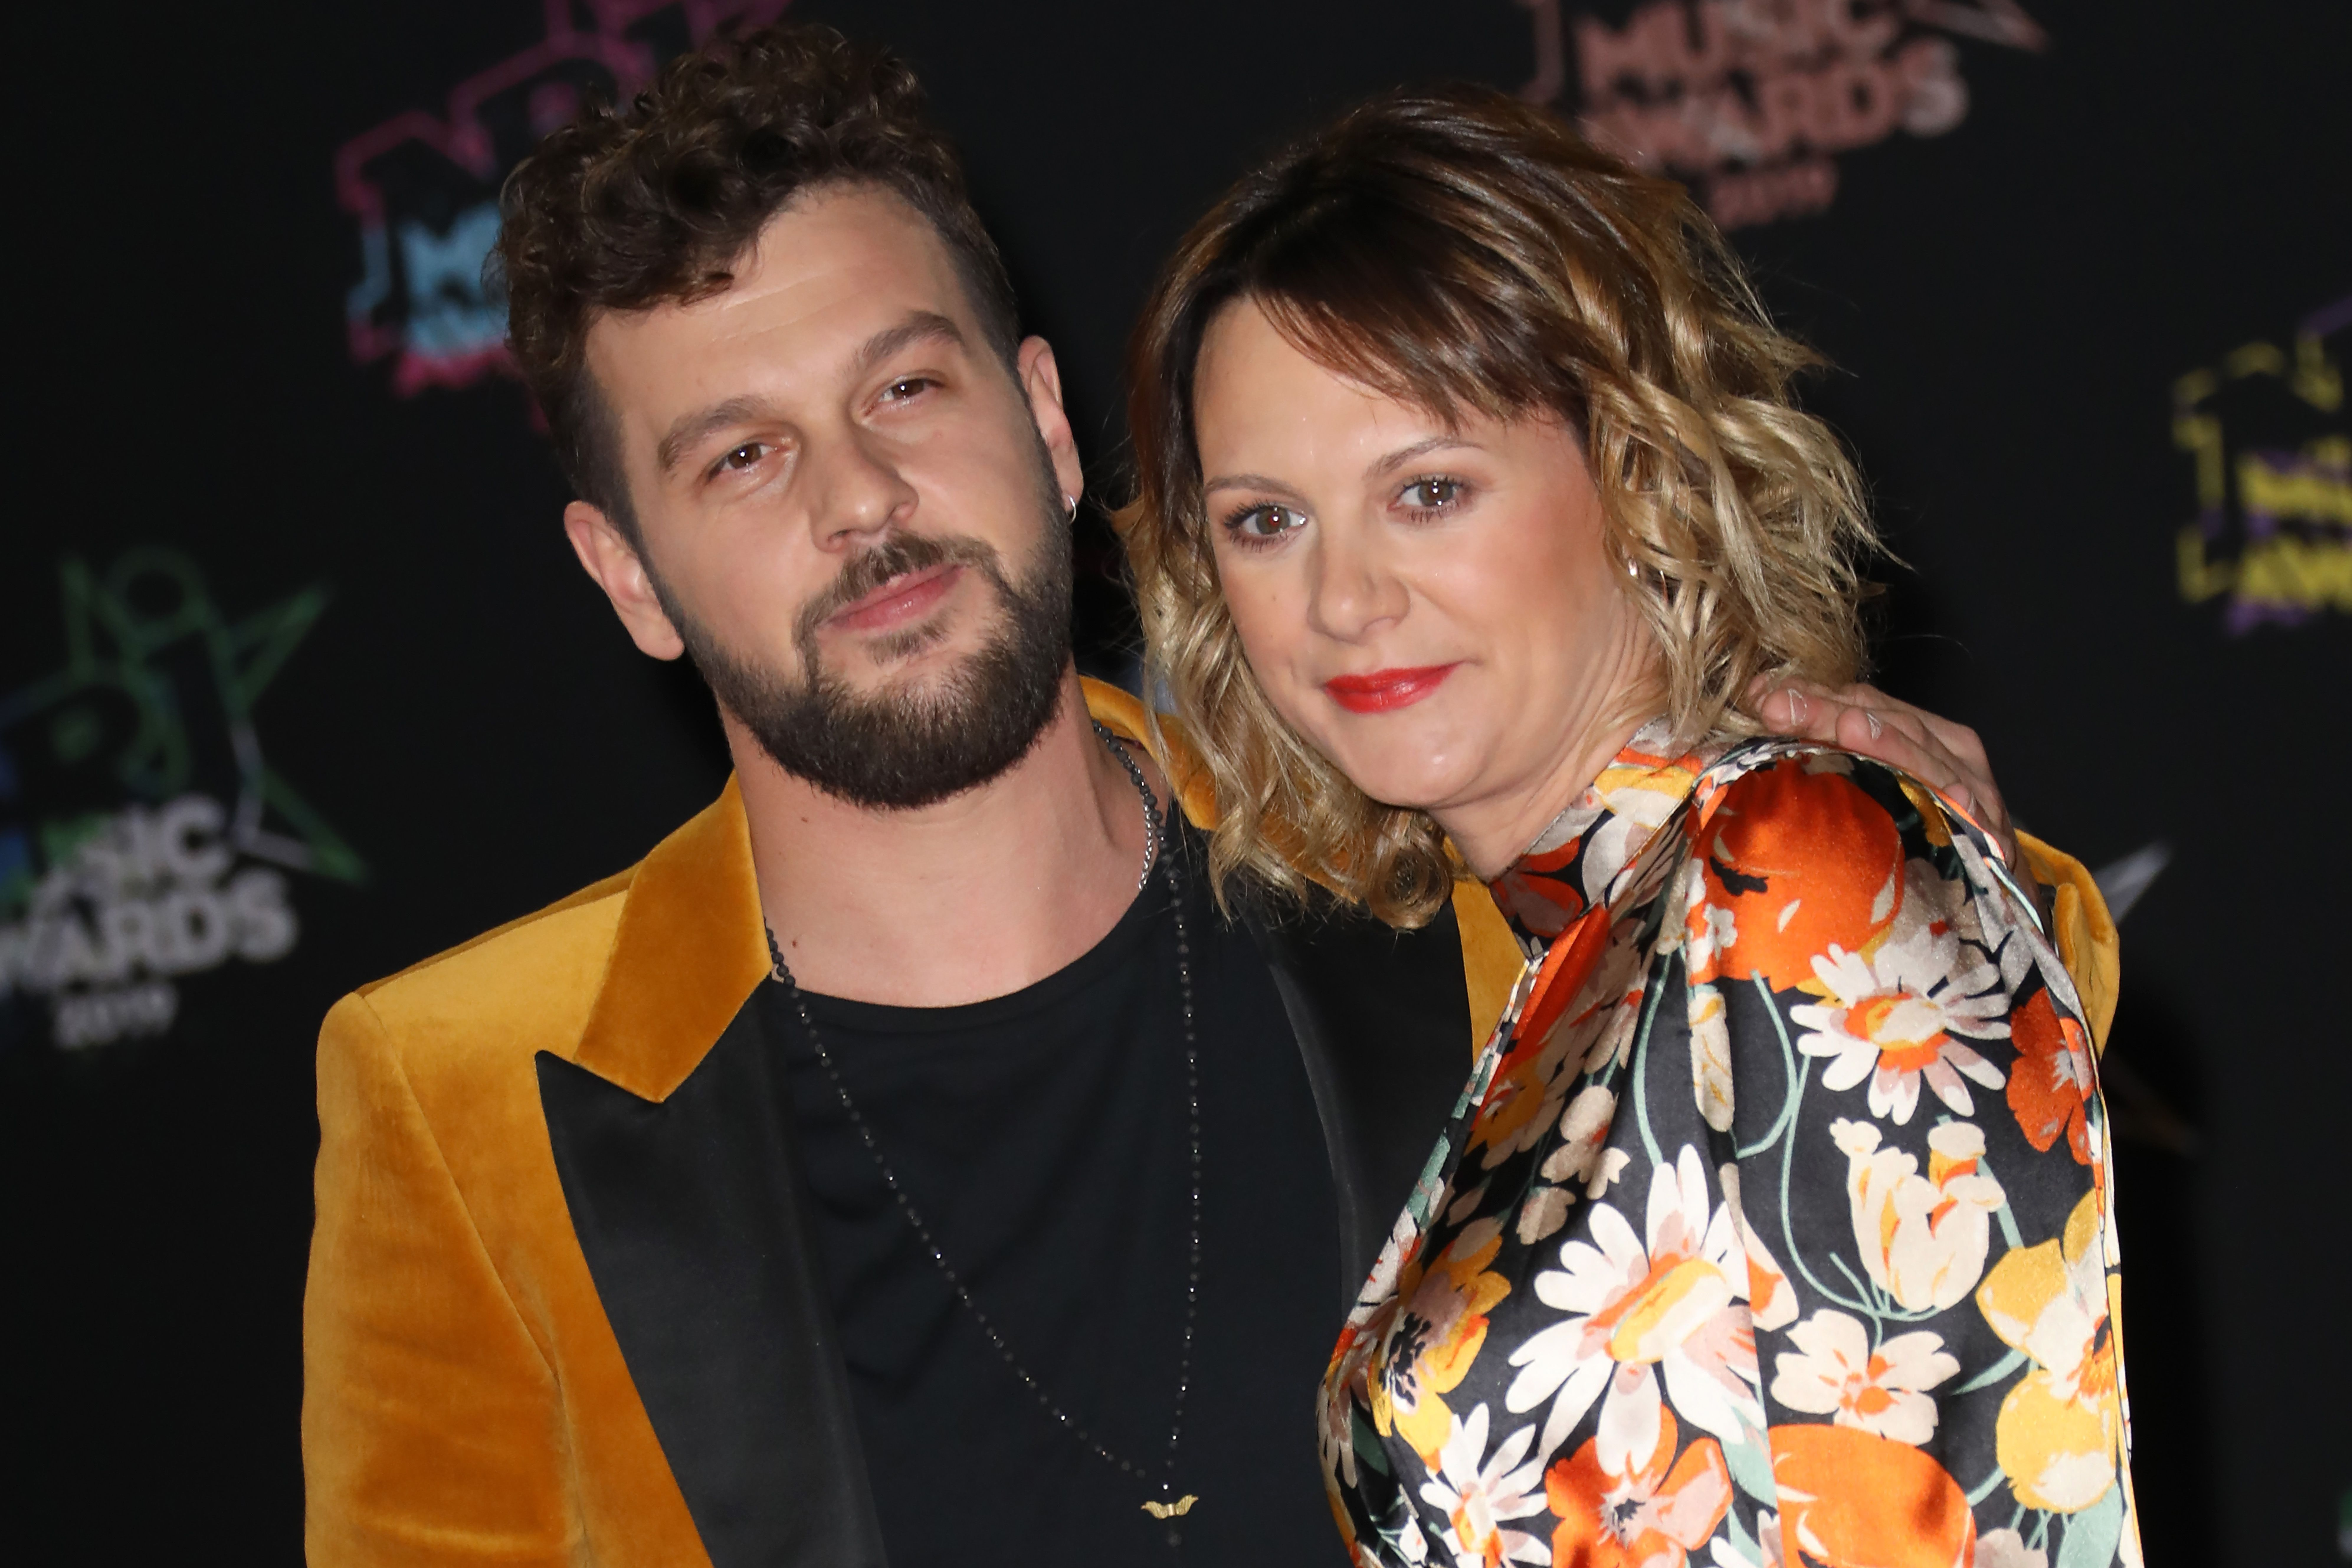 le chanteur Claudio Capeo et sa femme Aurelie Willgallis au Palais des Festivals le 09 novembre 2019 à Cannes, France. | Photo : Getty Images